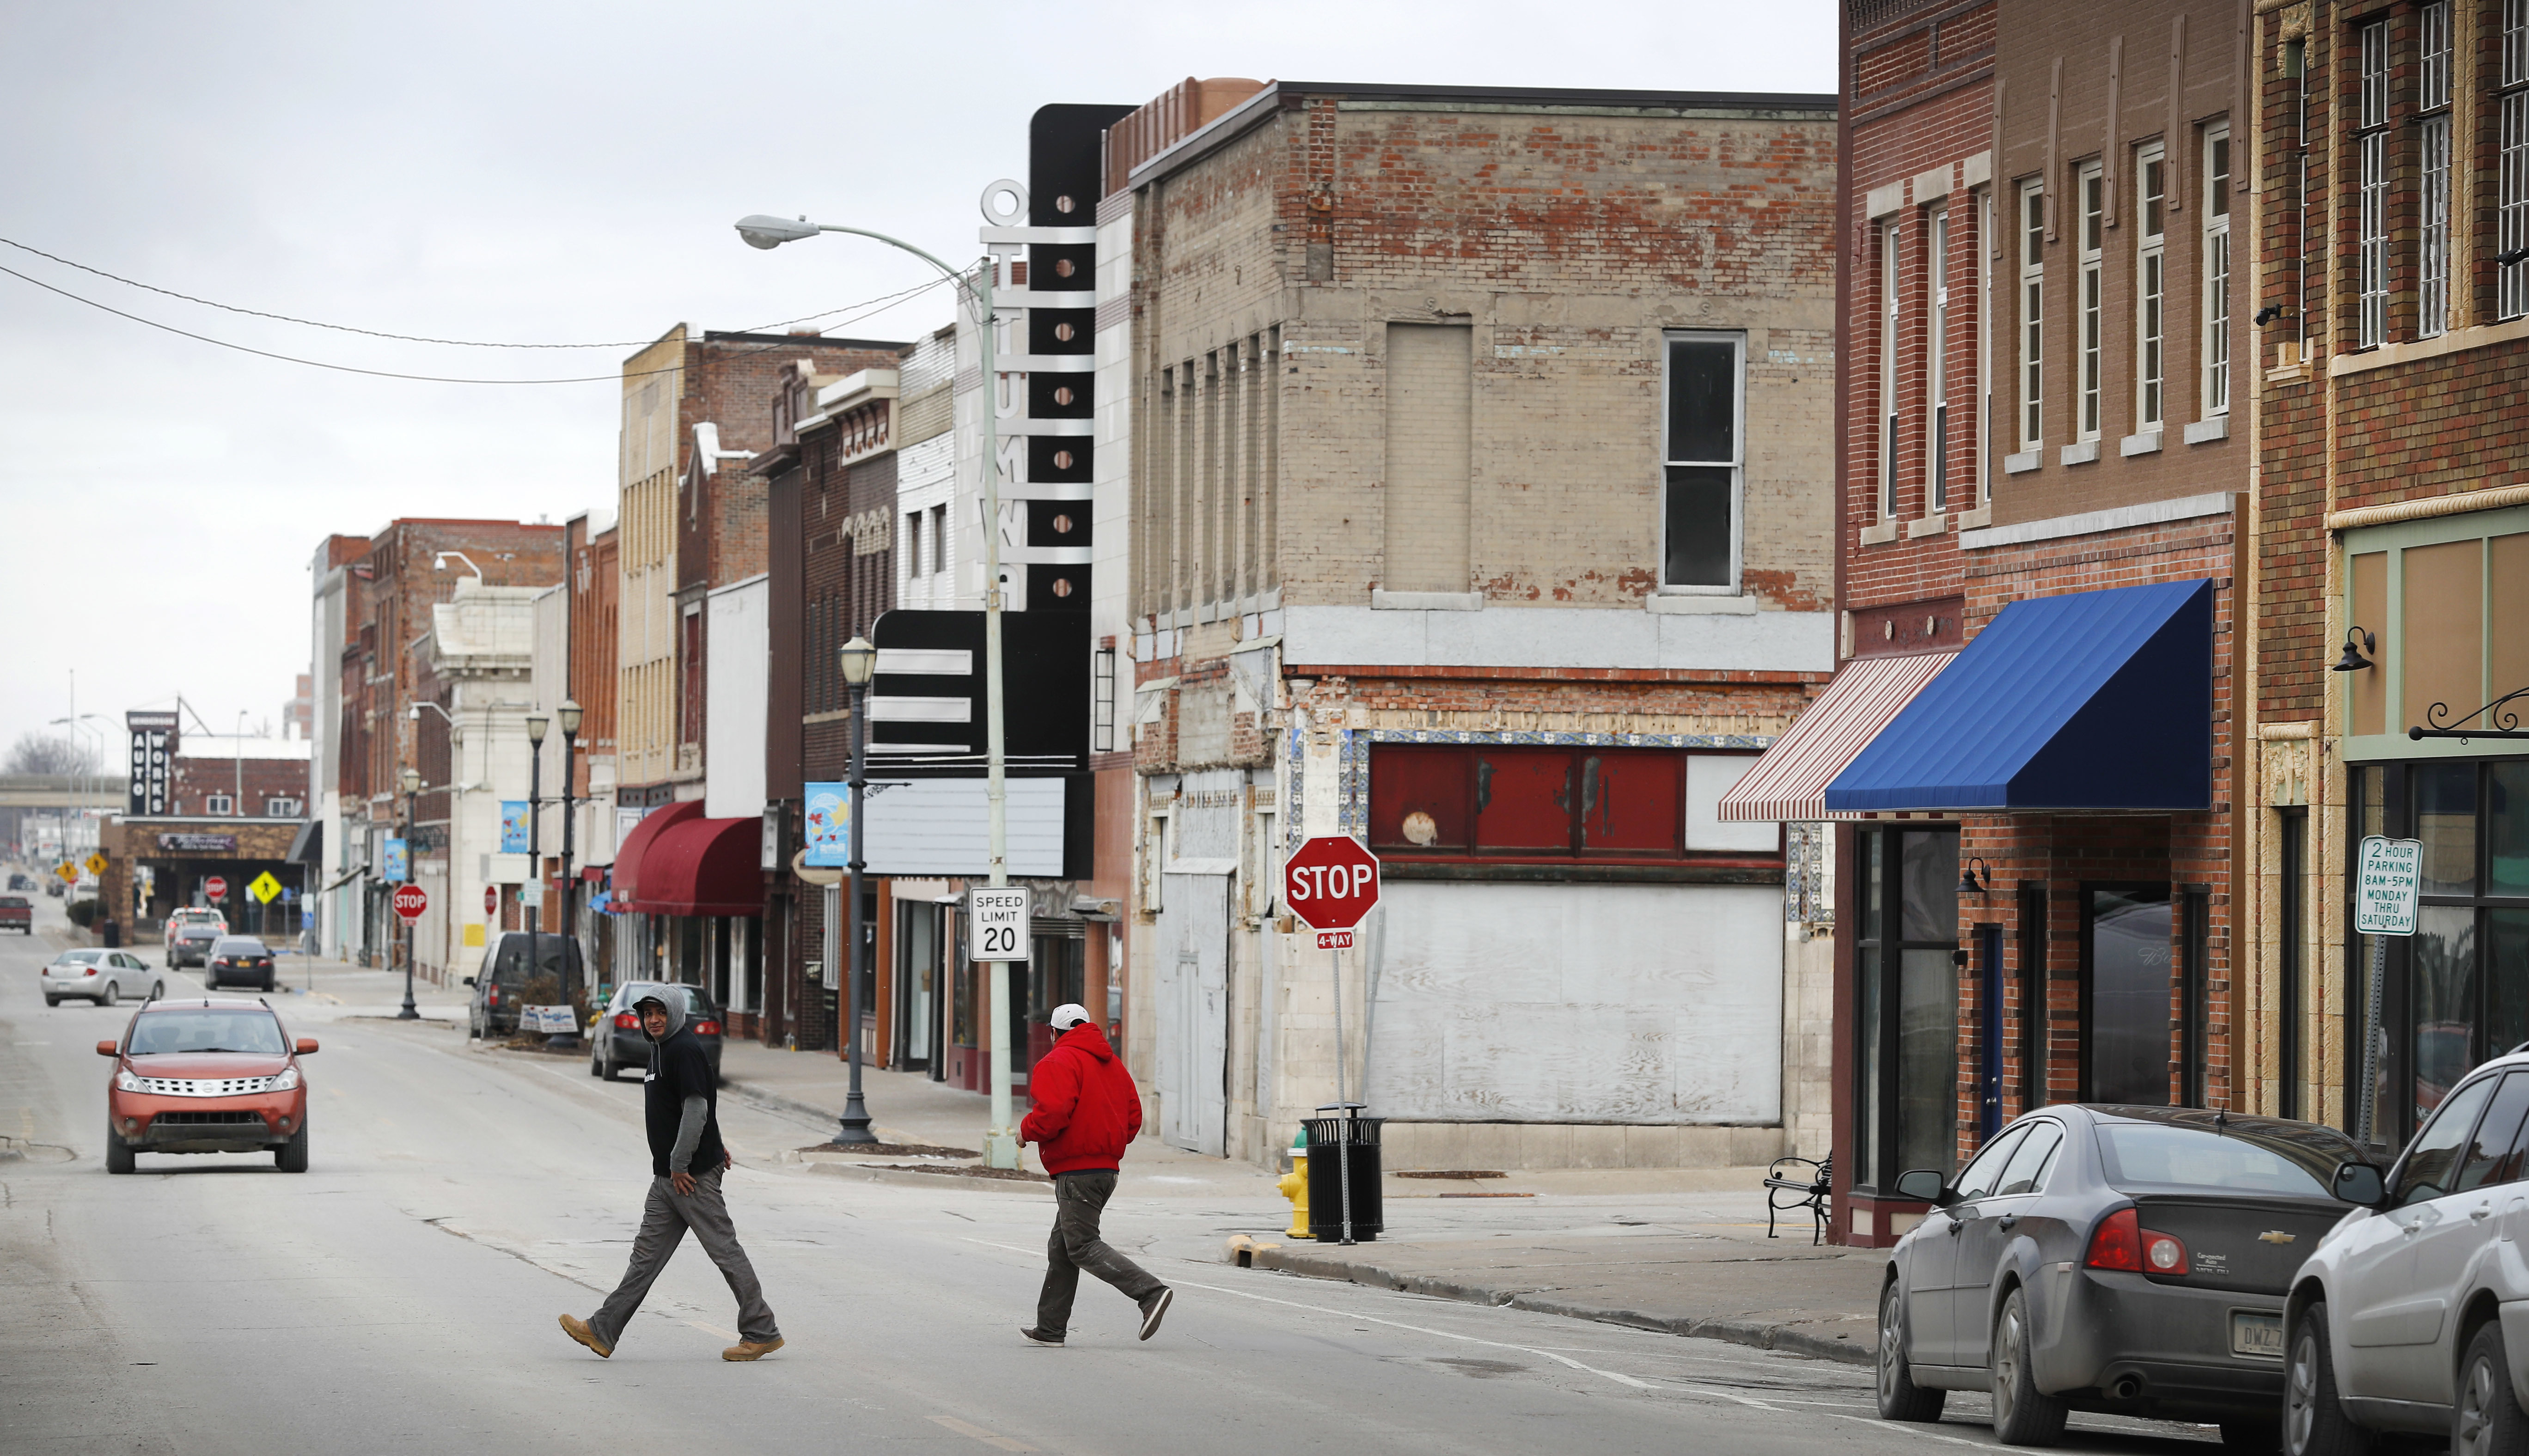 Local residents walk across Main Street, Friday, Jan. 27, 2017, in Ottumwa, Iowa. Far from the cacophony enveloping Washington in President Donald Trump's first week in office, the Iowa voters who helped him capture the state and the presidency last November give the president high marks for reversing eight years of Democrat Barack Obama's policies. (Charlie Neibergall/AP)